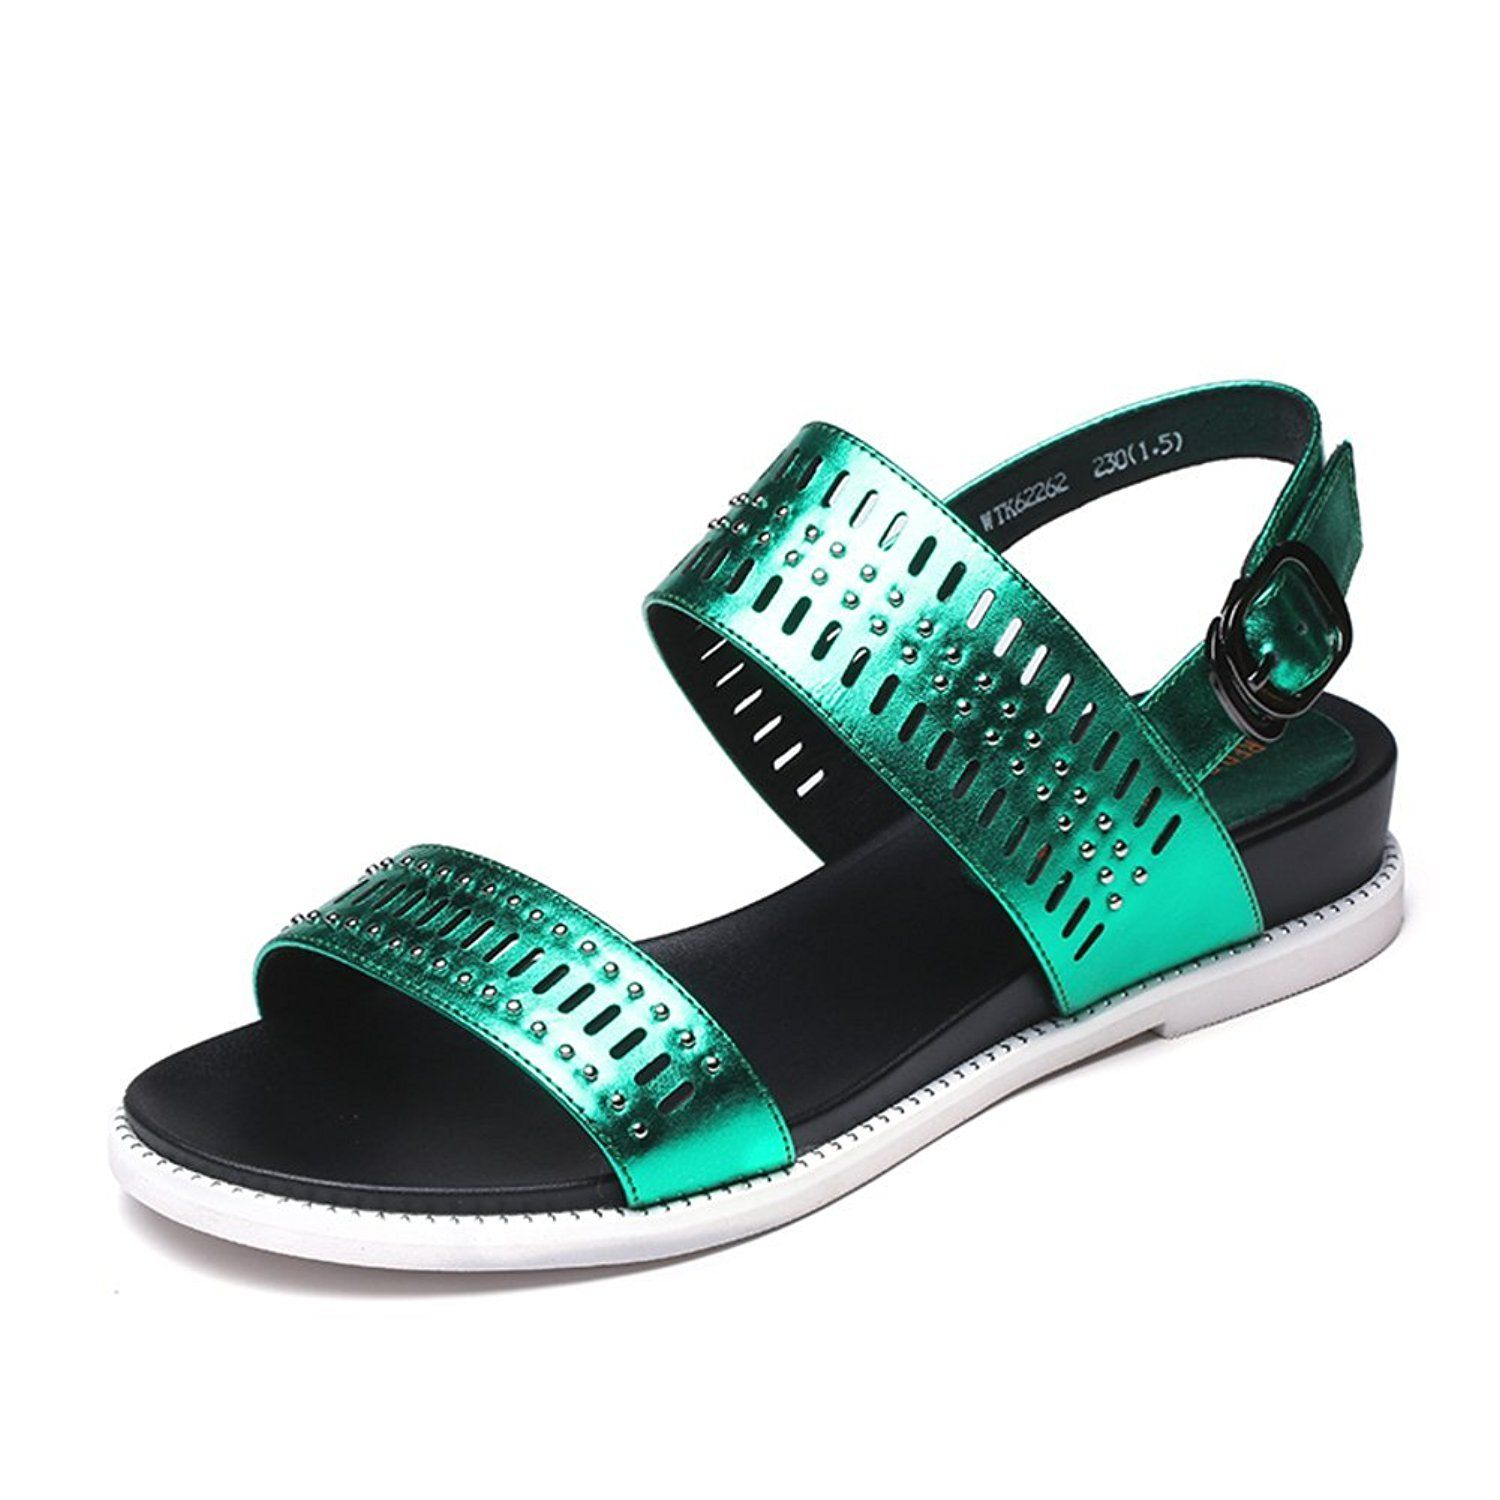 Sandals shoes comfortable - Summer Personality Rivet Hollow Breathable Shoes Comfortable Casual Flat Sandals Click Image